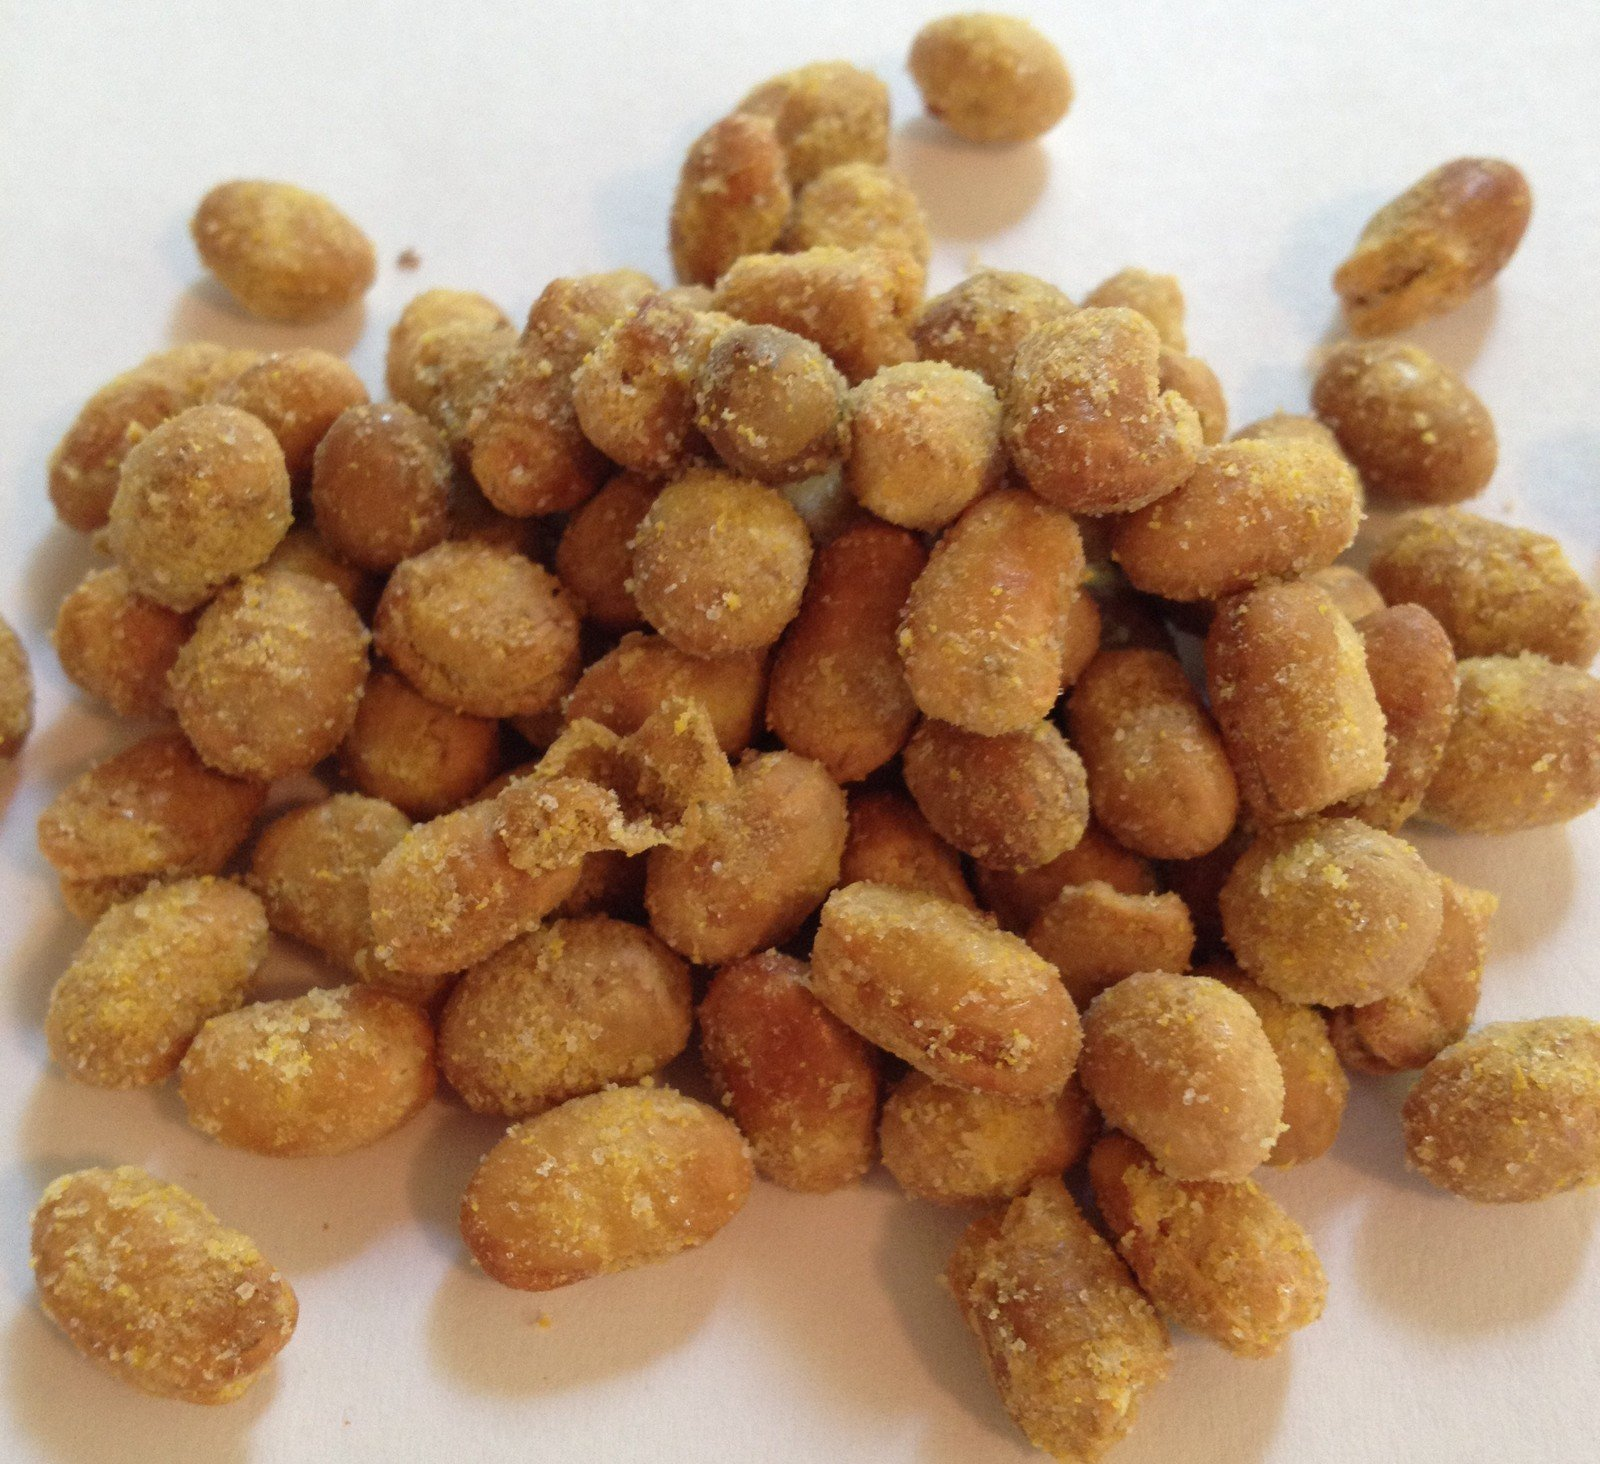 Wasabi Roasted Seasoned Soy Nuts WASABI 1 pound bag by The Brittle Box Candy Co.